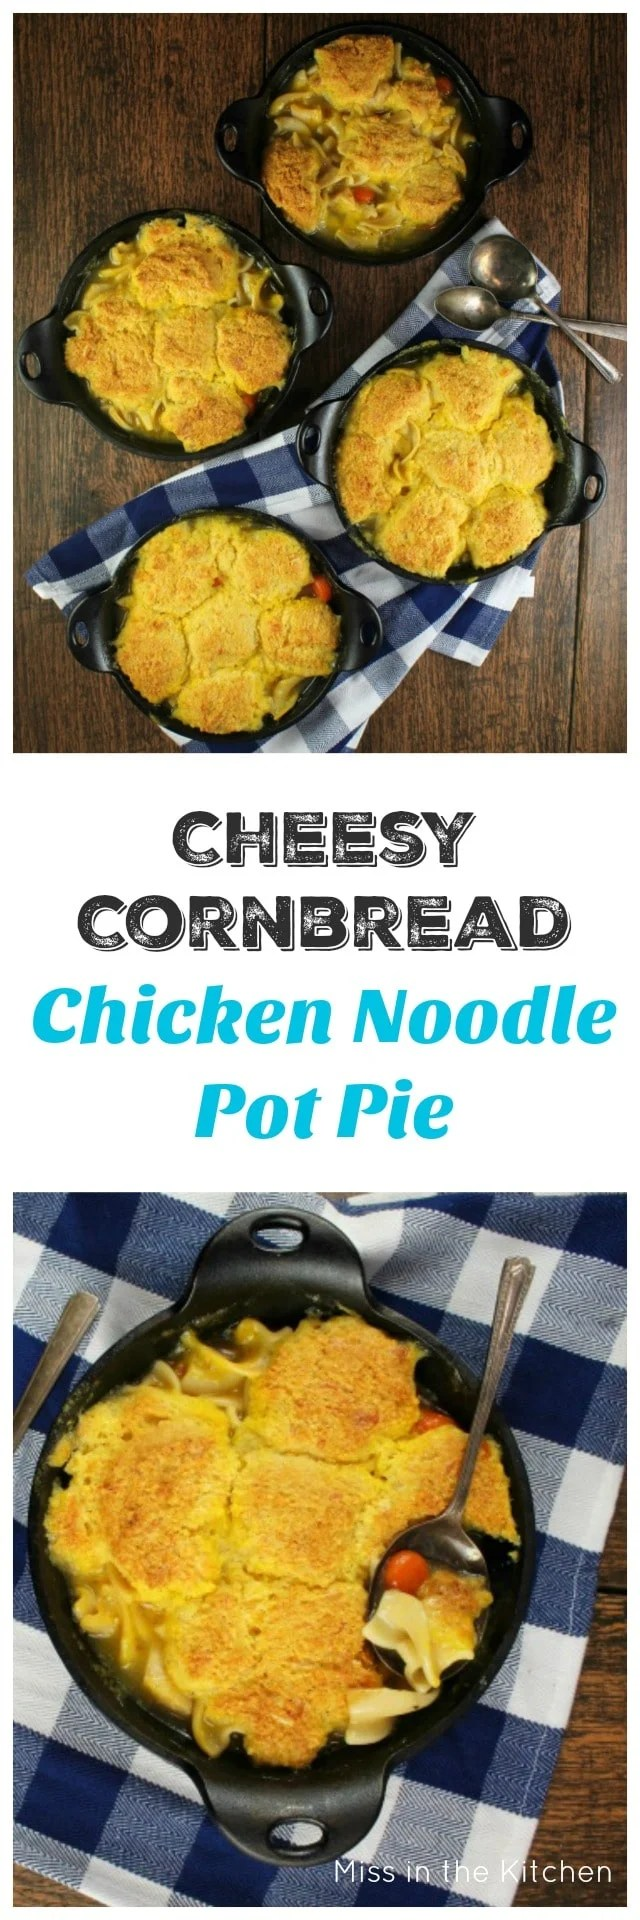 Cheesy Cornbread Chicken Noodle Pot Pie is the ultimate comfort food that comes together so quick and easy for a filling and delicious dinner that the whole family will love! From MissintheKitchen.com #ad